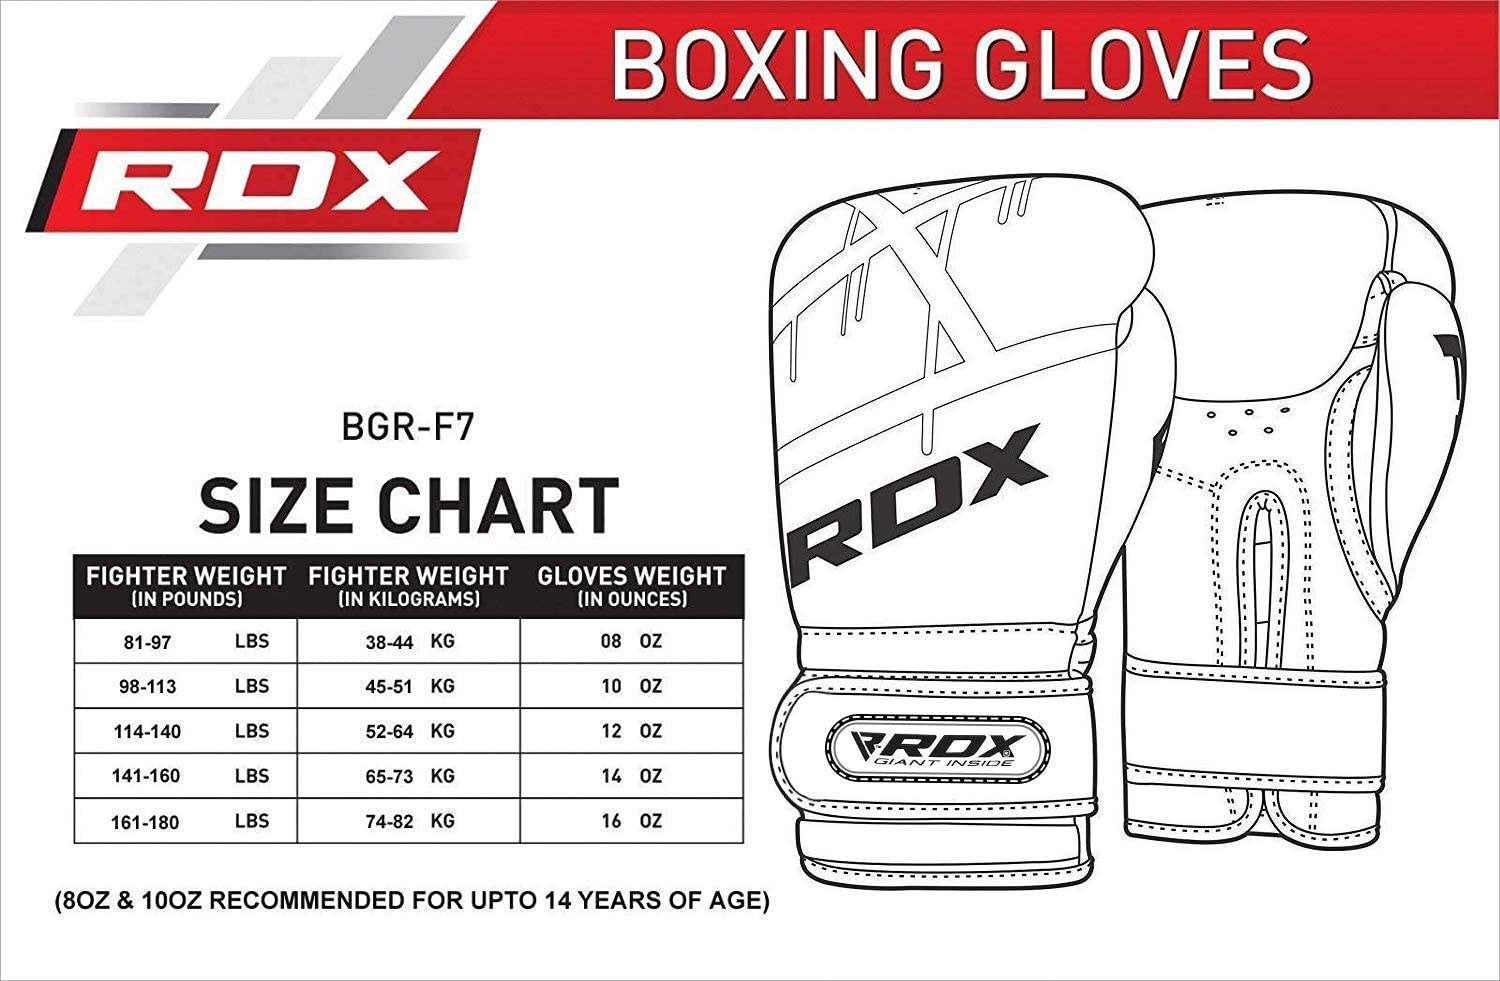 RDX Boxing Gloves for Training Muay Thai Maya Hide Leather Mitts for Fighting Focus Pads Sparring EGO Gloves for Punch Bag Kickboxing Thai Pad Grappling Dummy and Double End Ball Punching